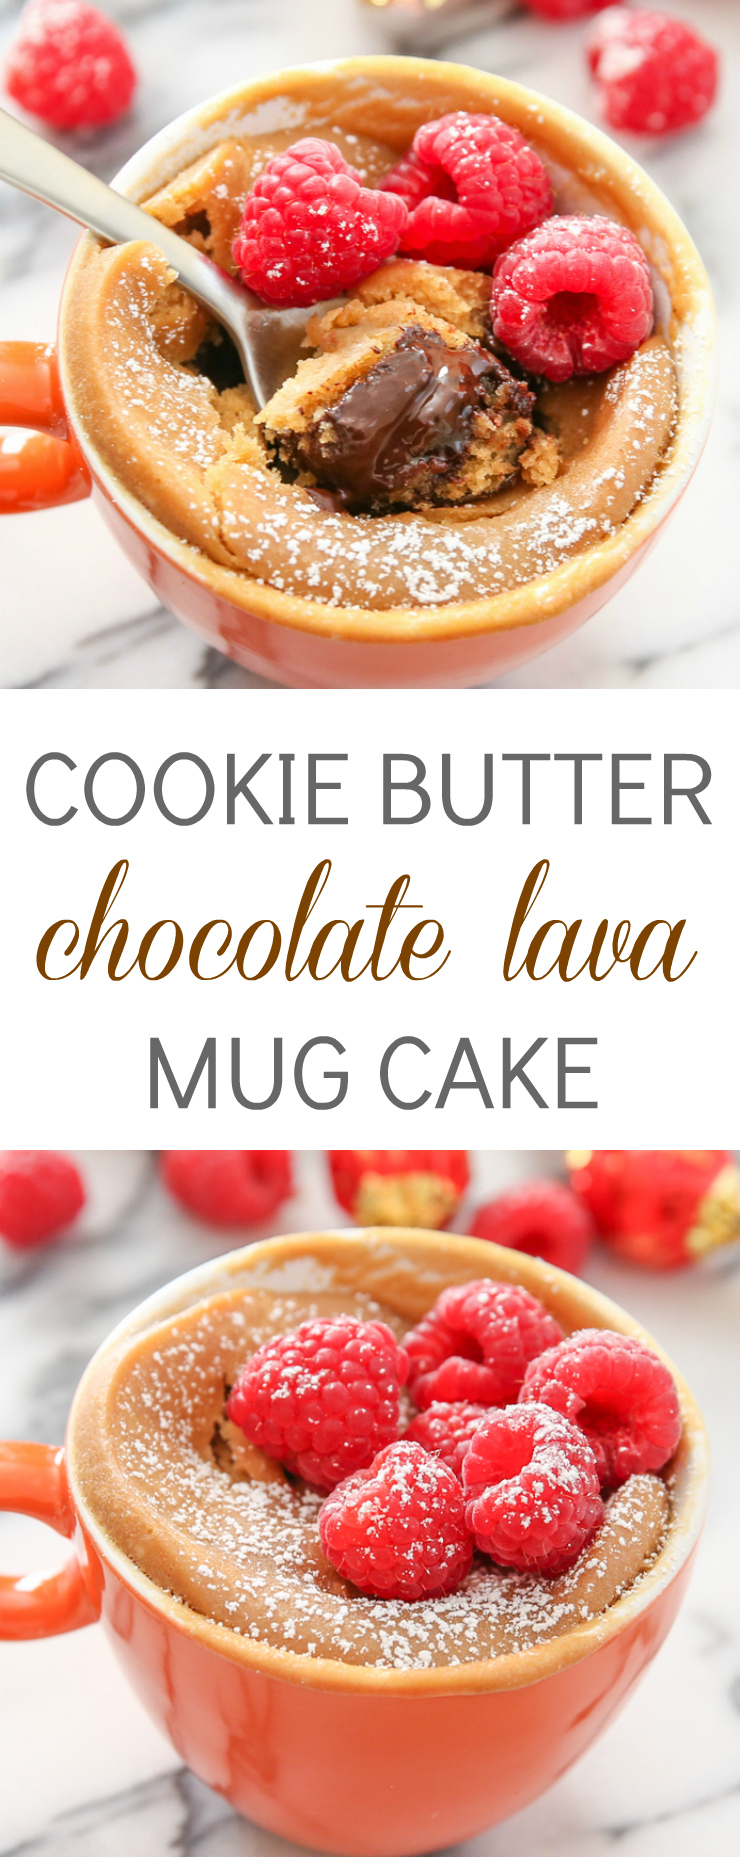 Cookie Butter Chocolate Lava Mug Cake photo collage